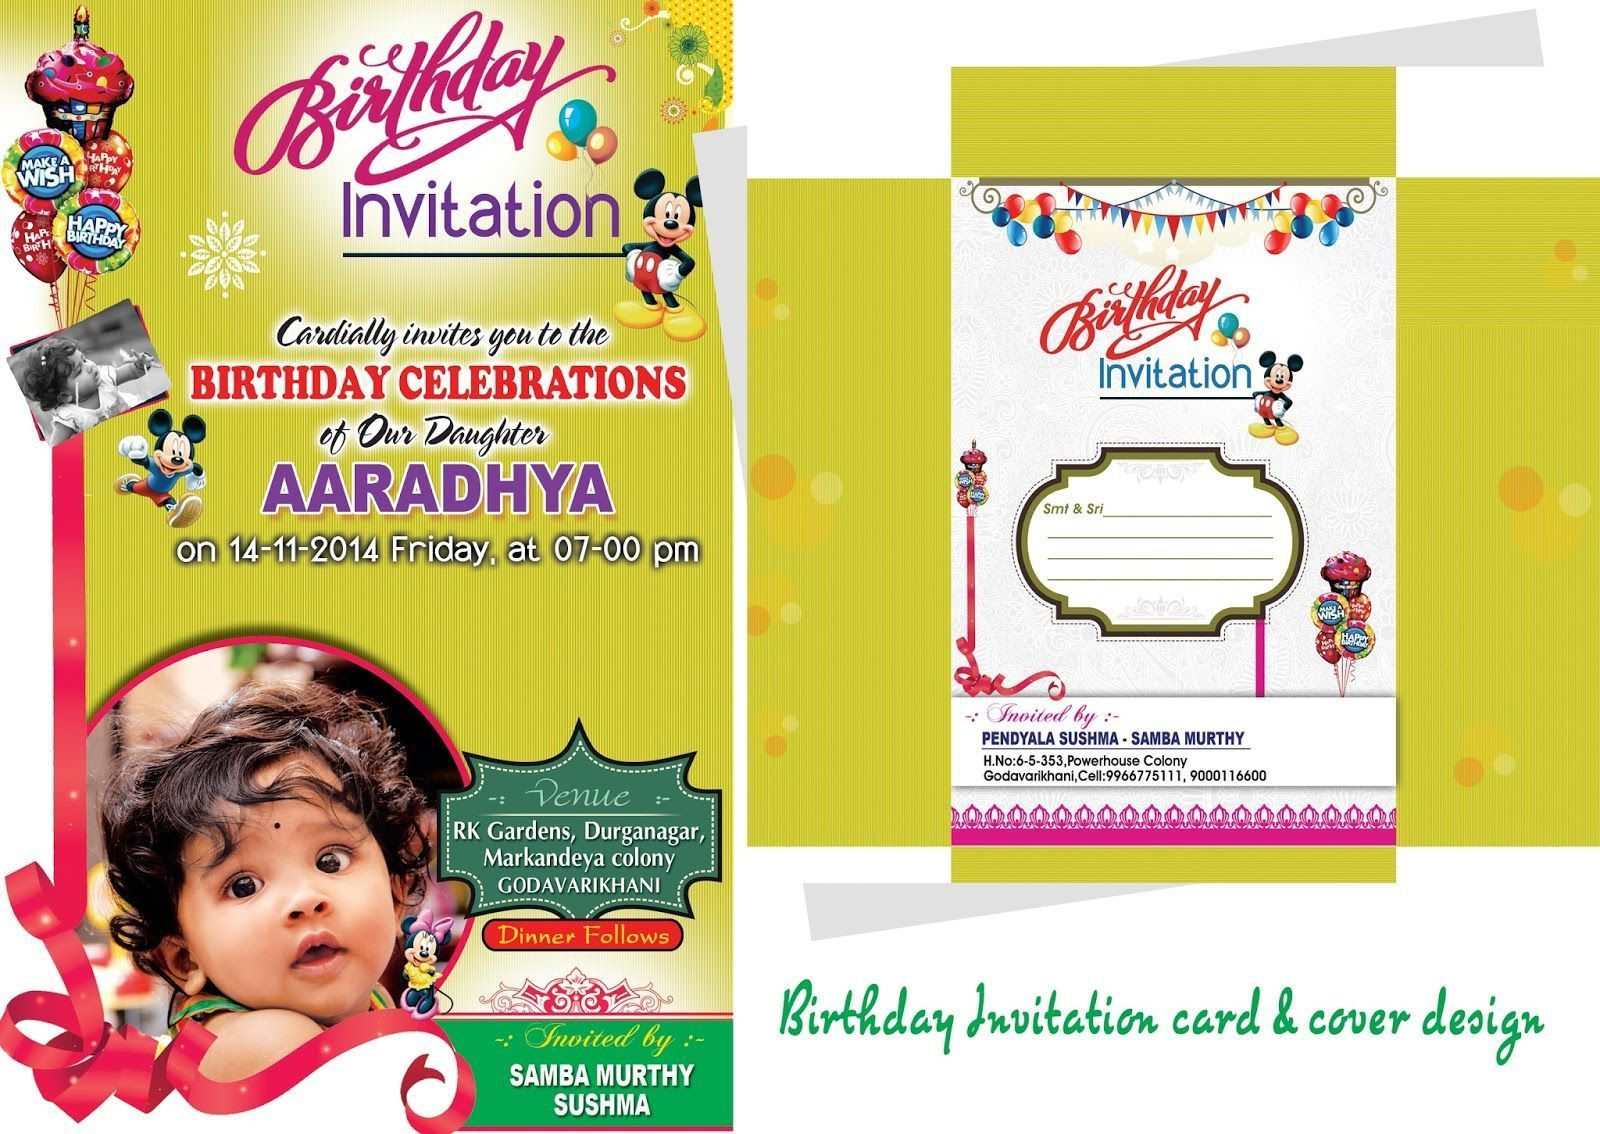 000 Best Free Online Birthday Invitation Card Maker With Photo High Def  1stFull